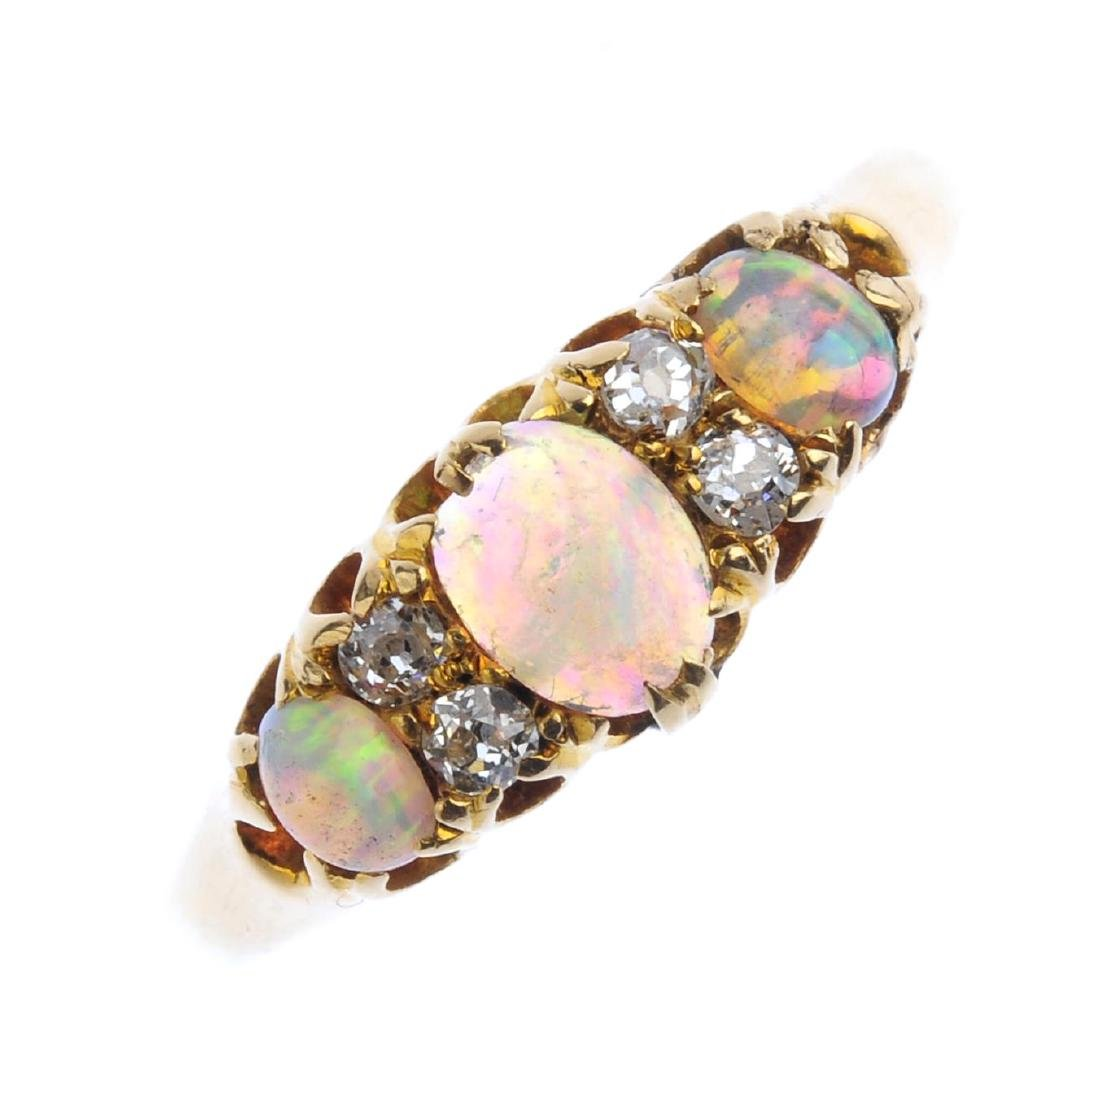 An early 20th century 18ct gold opal and diamond